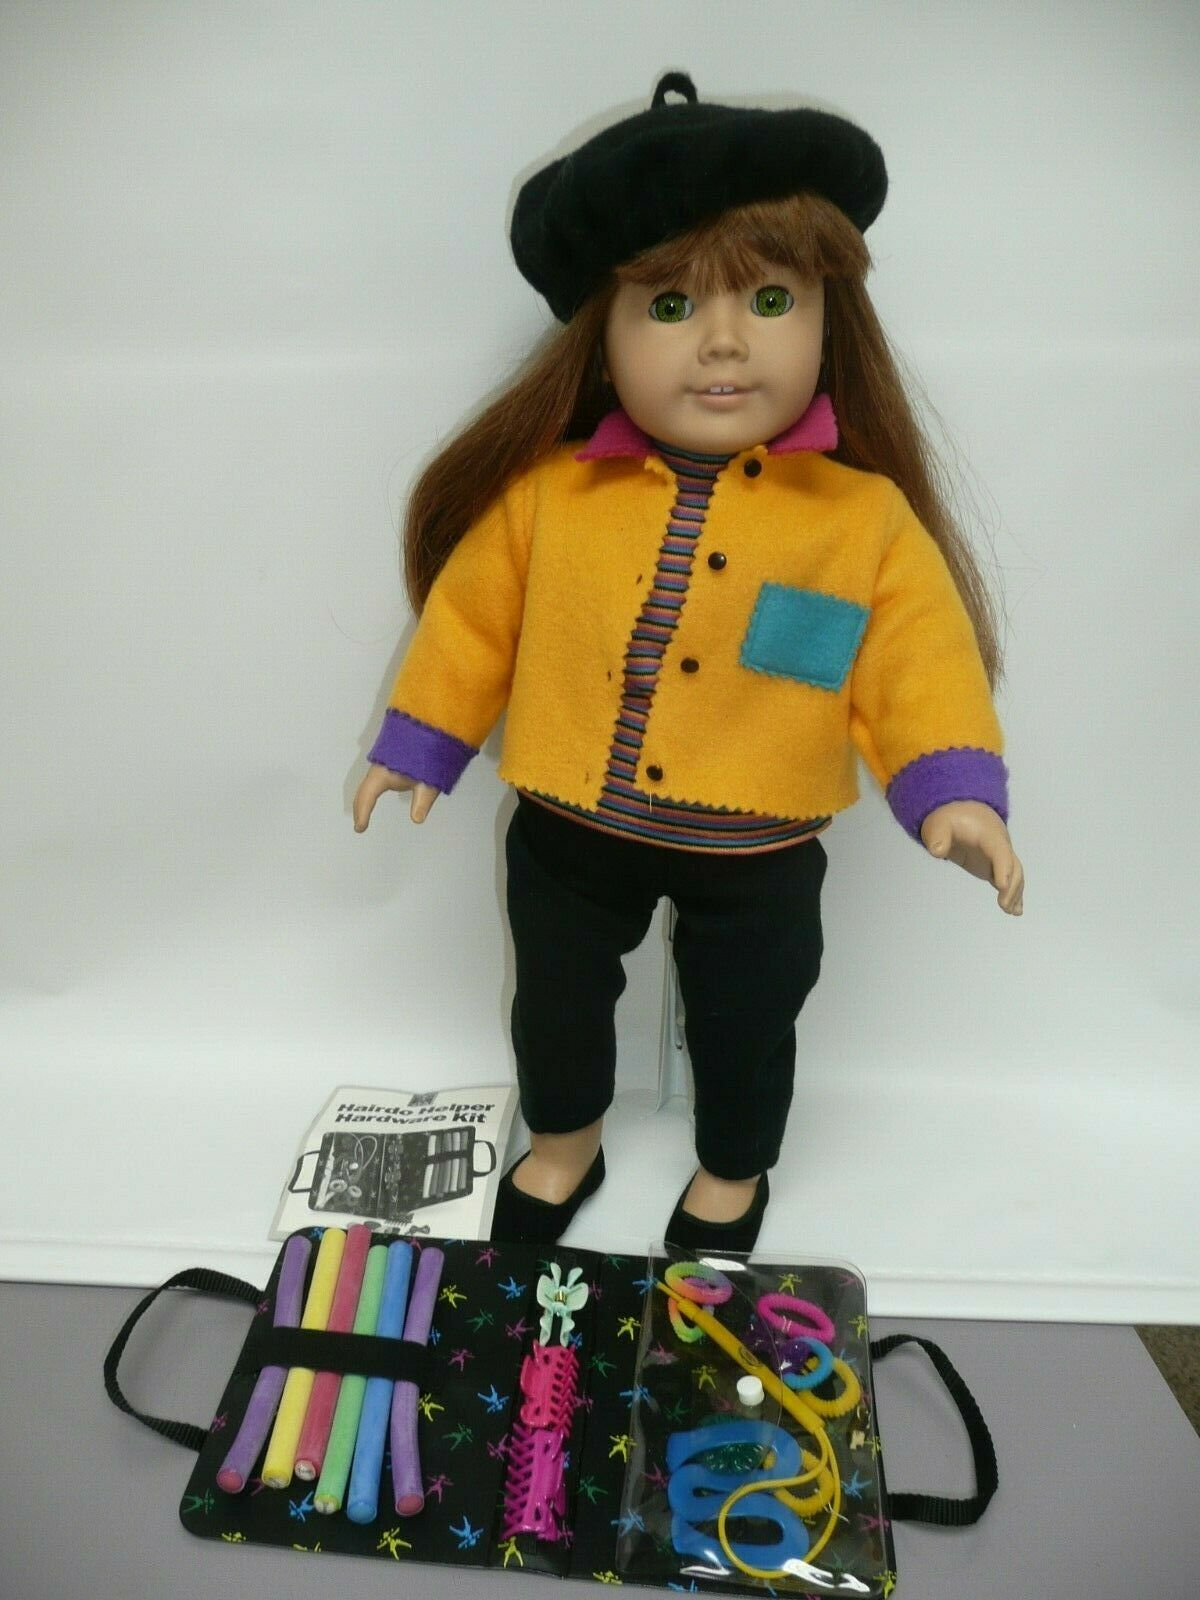 Pleasant Company Grün Eyed American Girl 1996 in First Day Outfit w Hair Access